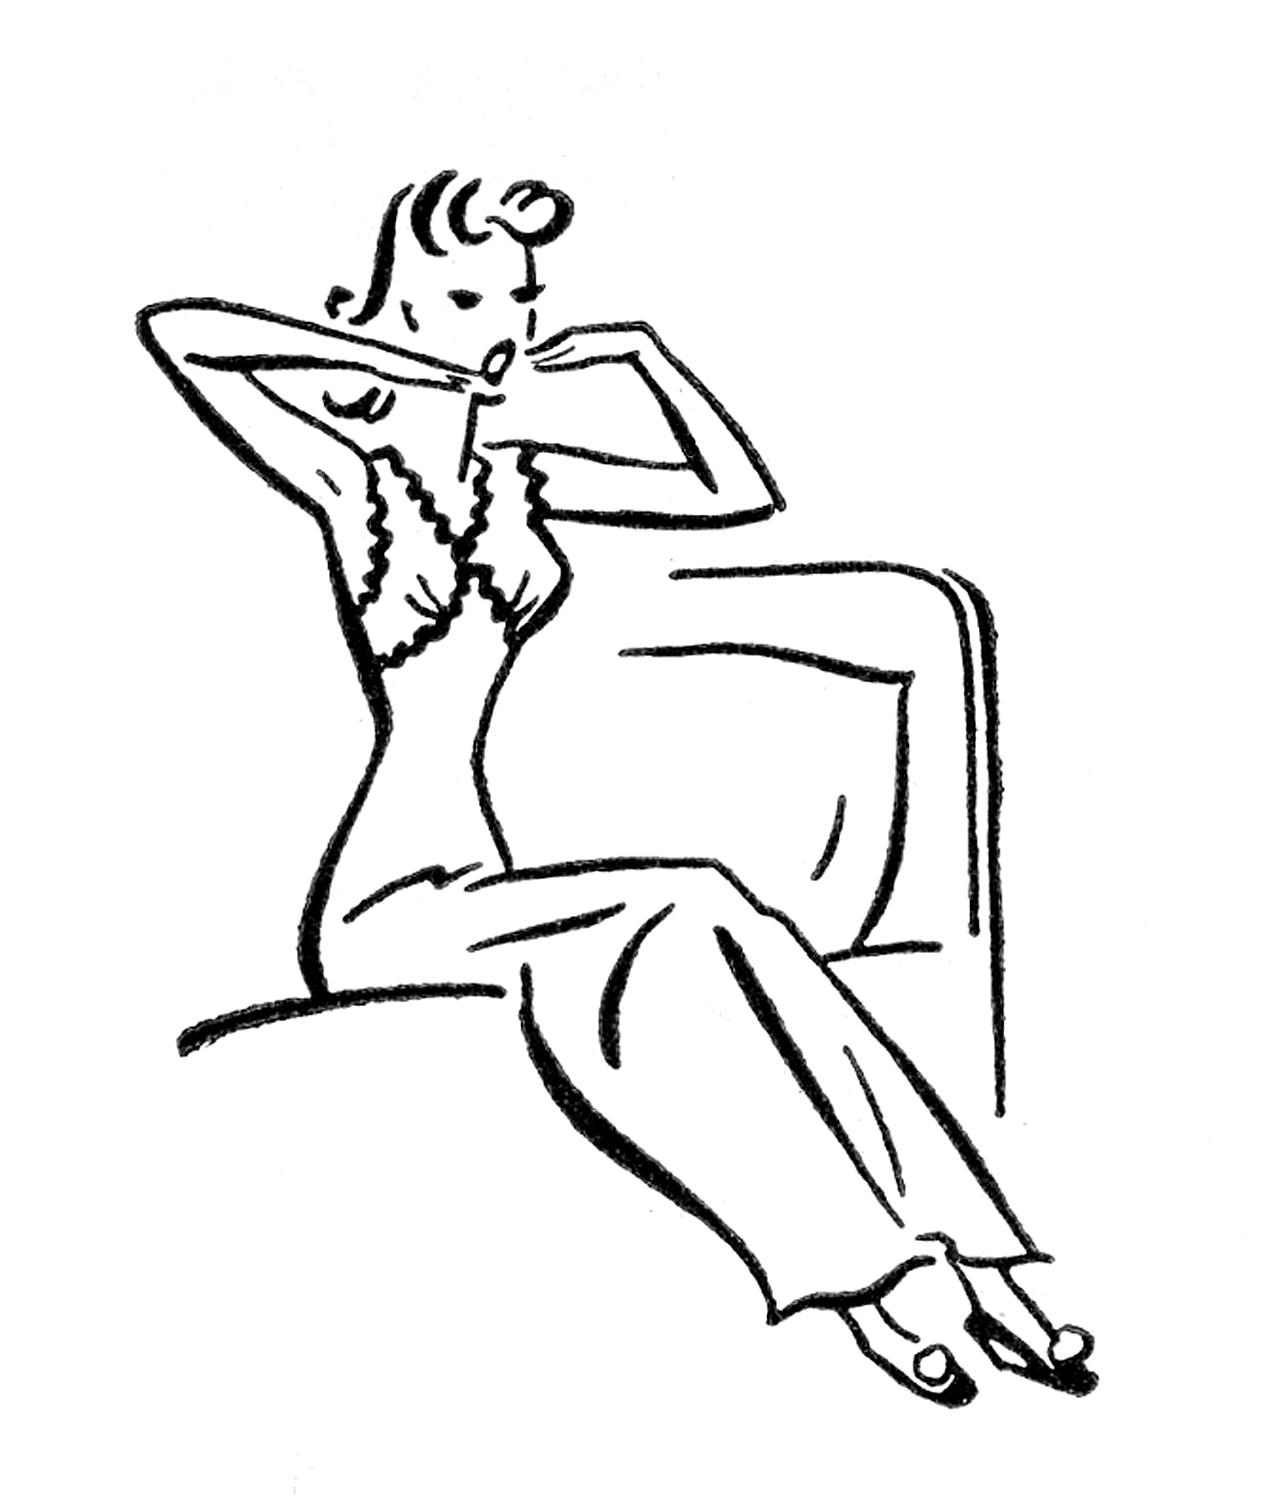 Yawn clipart woke up Well Images Retro Images The